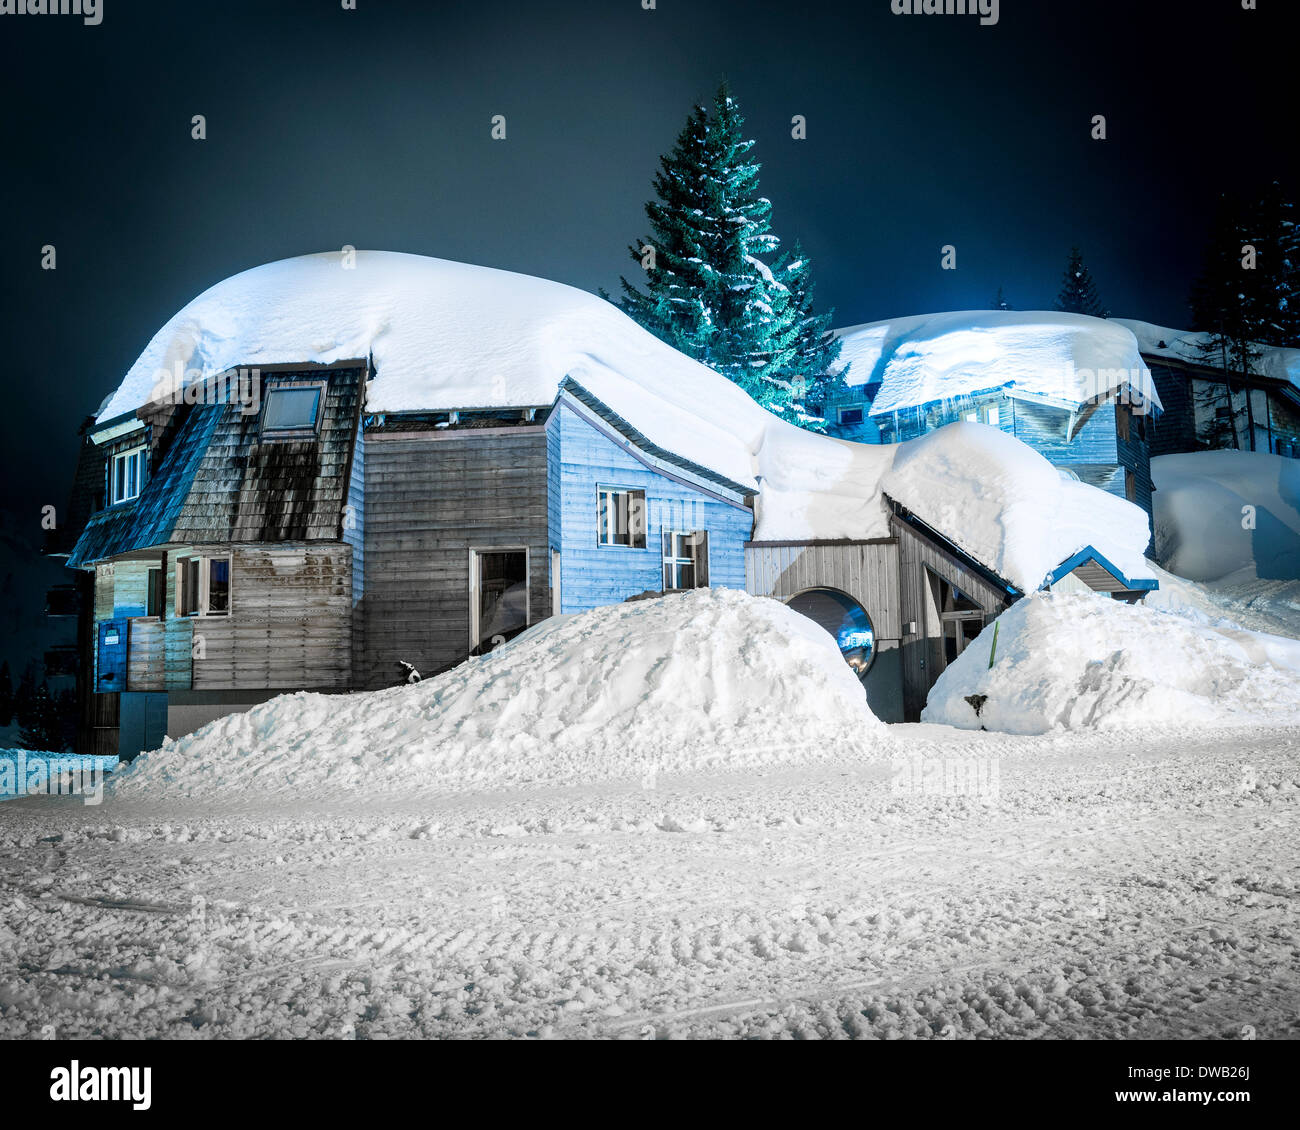 Avoriaz, Avoriaz, France. Architect: Jacques Labro, Simon Cloutier, Jean-Jacques Orzoni, 2014. Chalet (Winter). Stock Photo